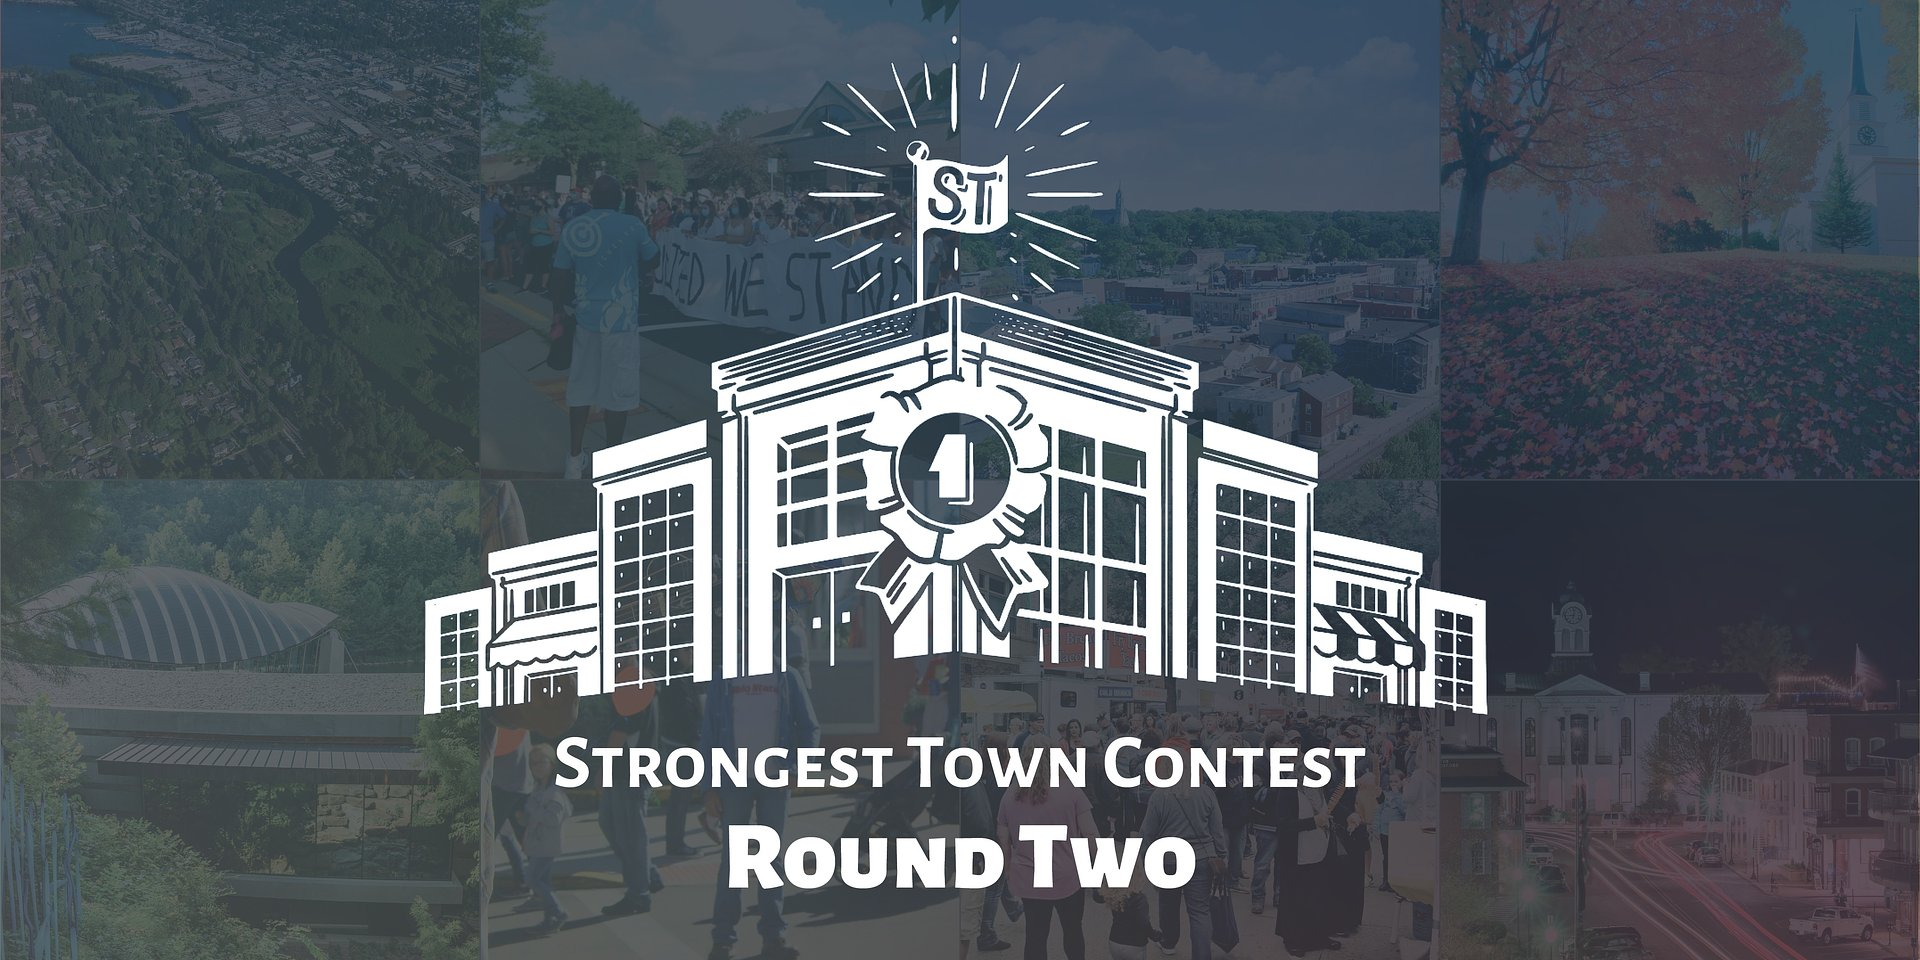 Strongest Town Contest releases photos from continent's most resilient communities